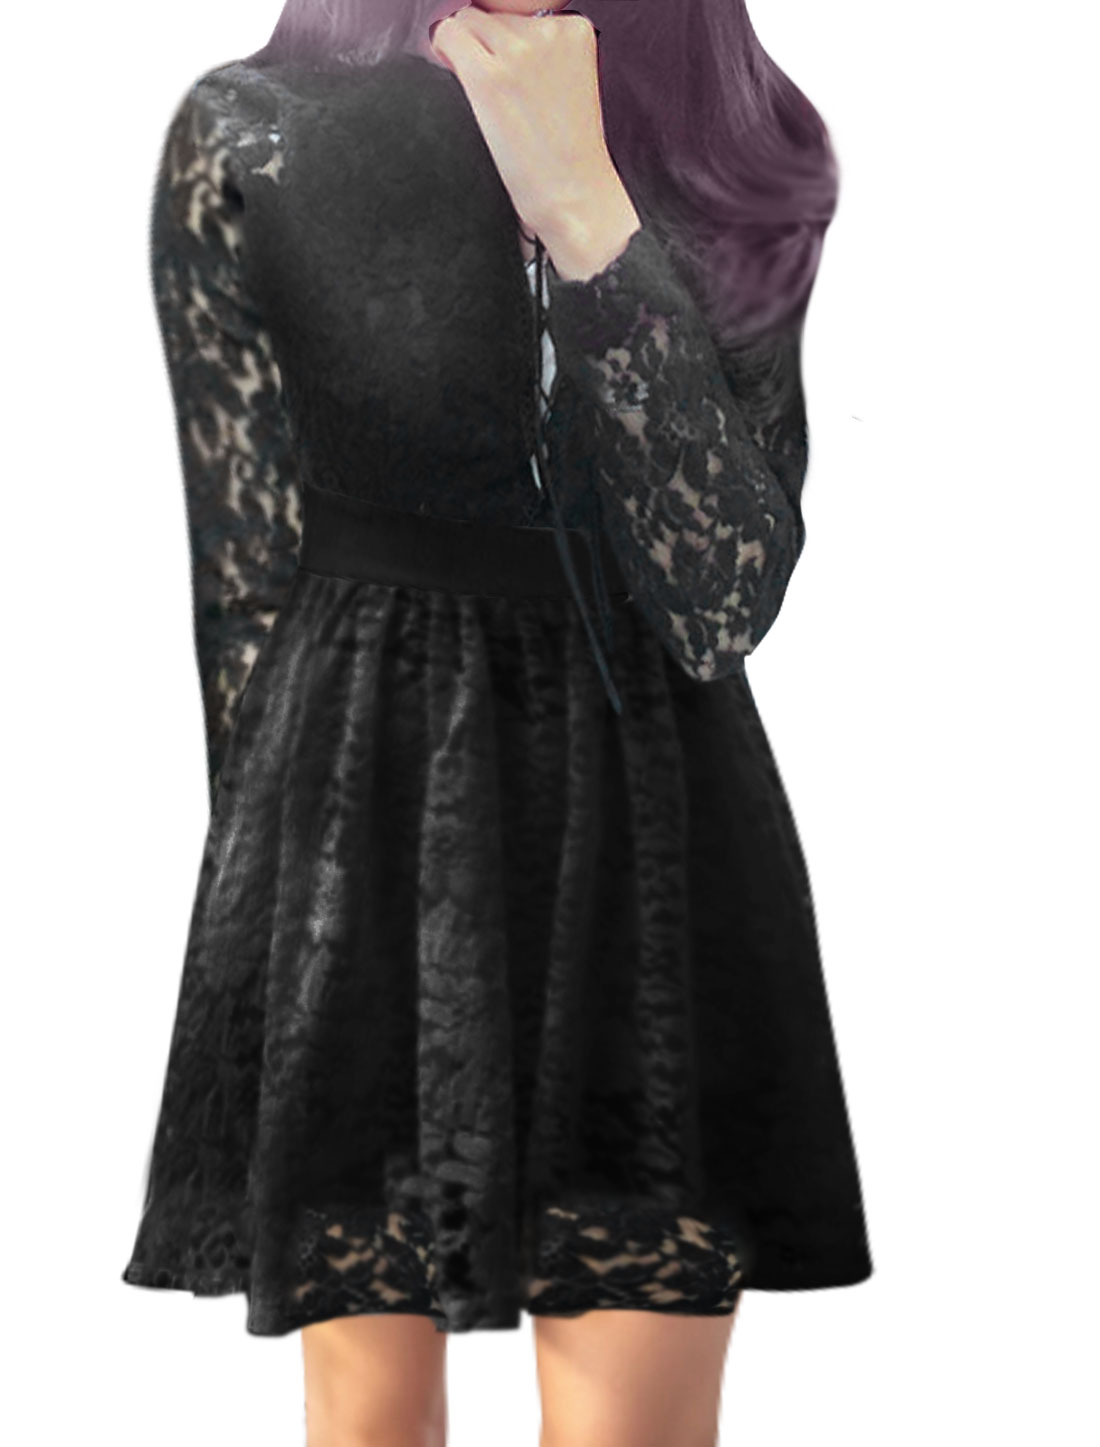 Women Long Sleeves Lace-Up Layered Lace A Line Dress Black XS